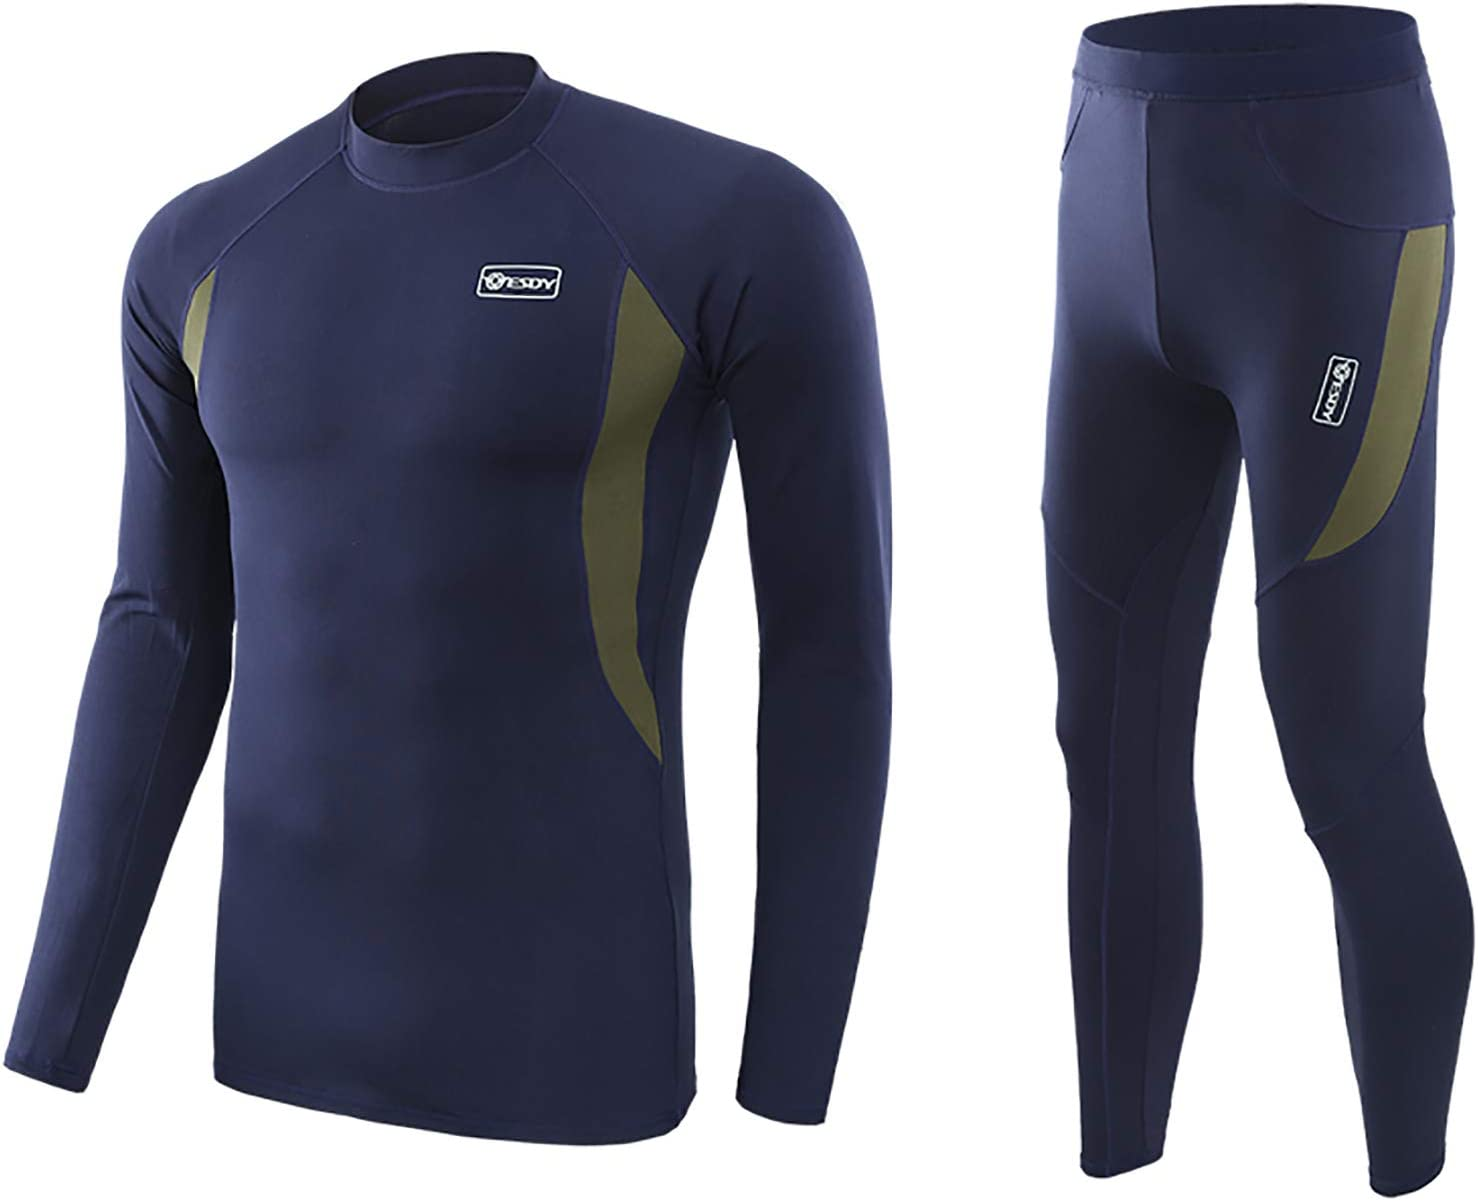 Huimingda Men's Fleece Thermal Underwear Long Johns Compression Sport Suit Winter Warm Base Layers Tops and Bottoms